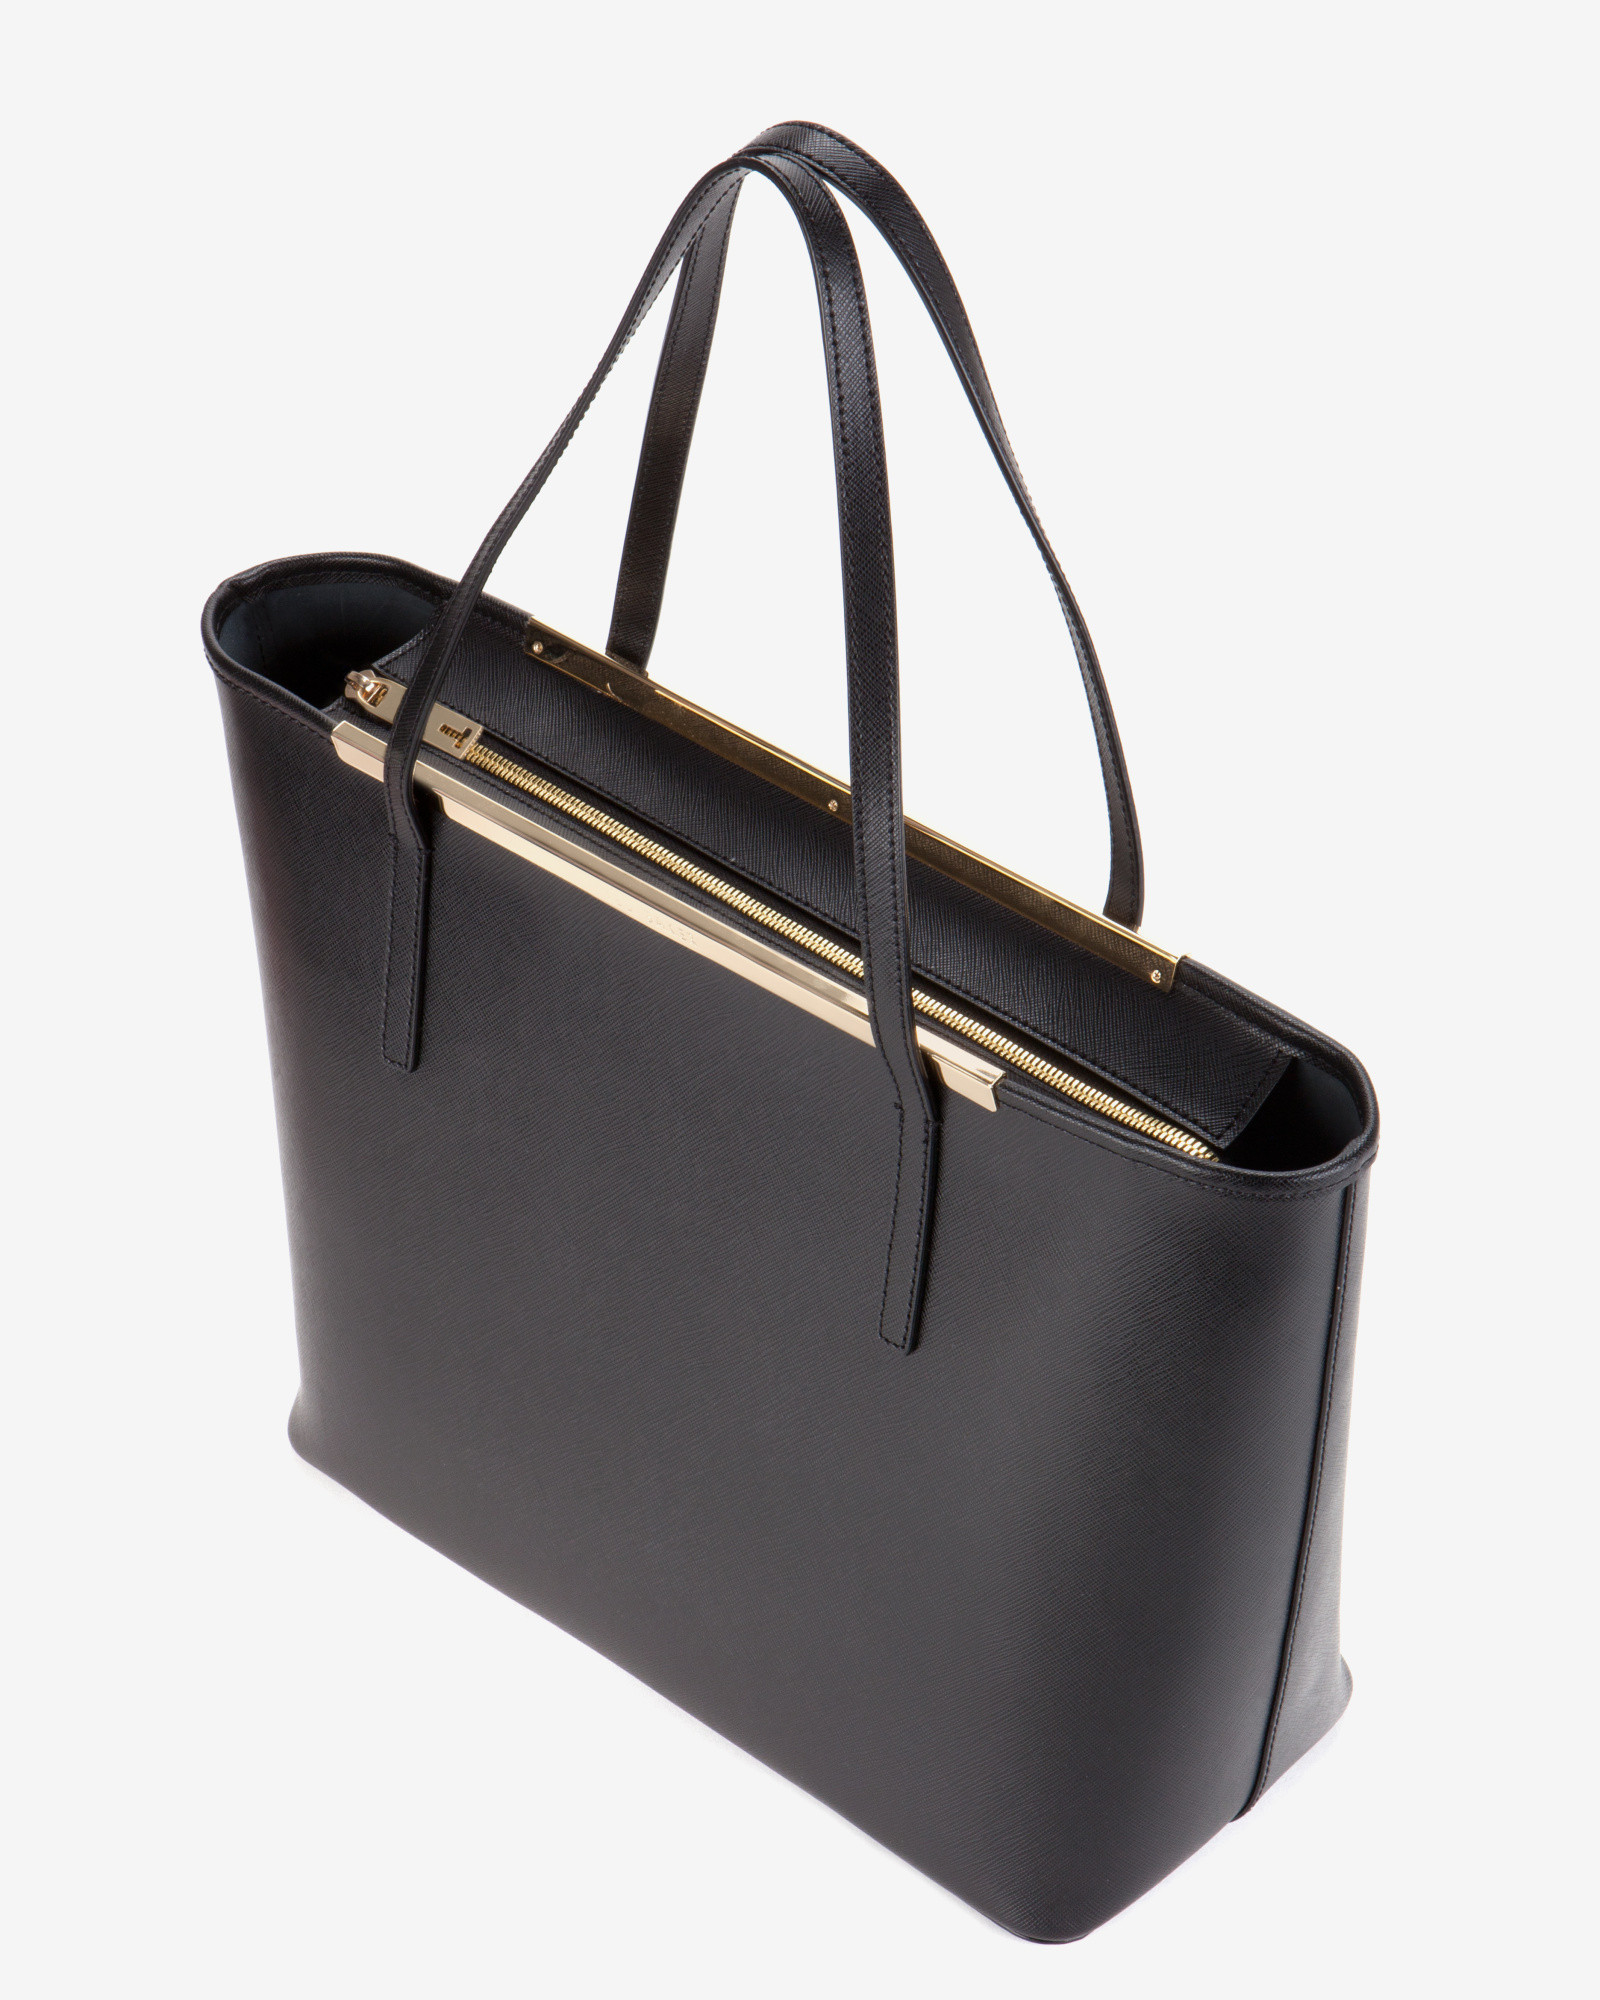 Ted baker Large Crosshatch Leather Shopper Bag in Black | Lyst